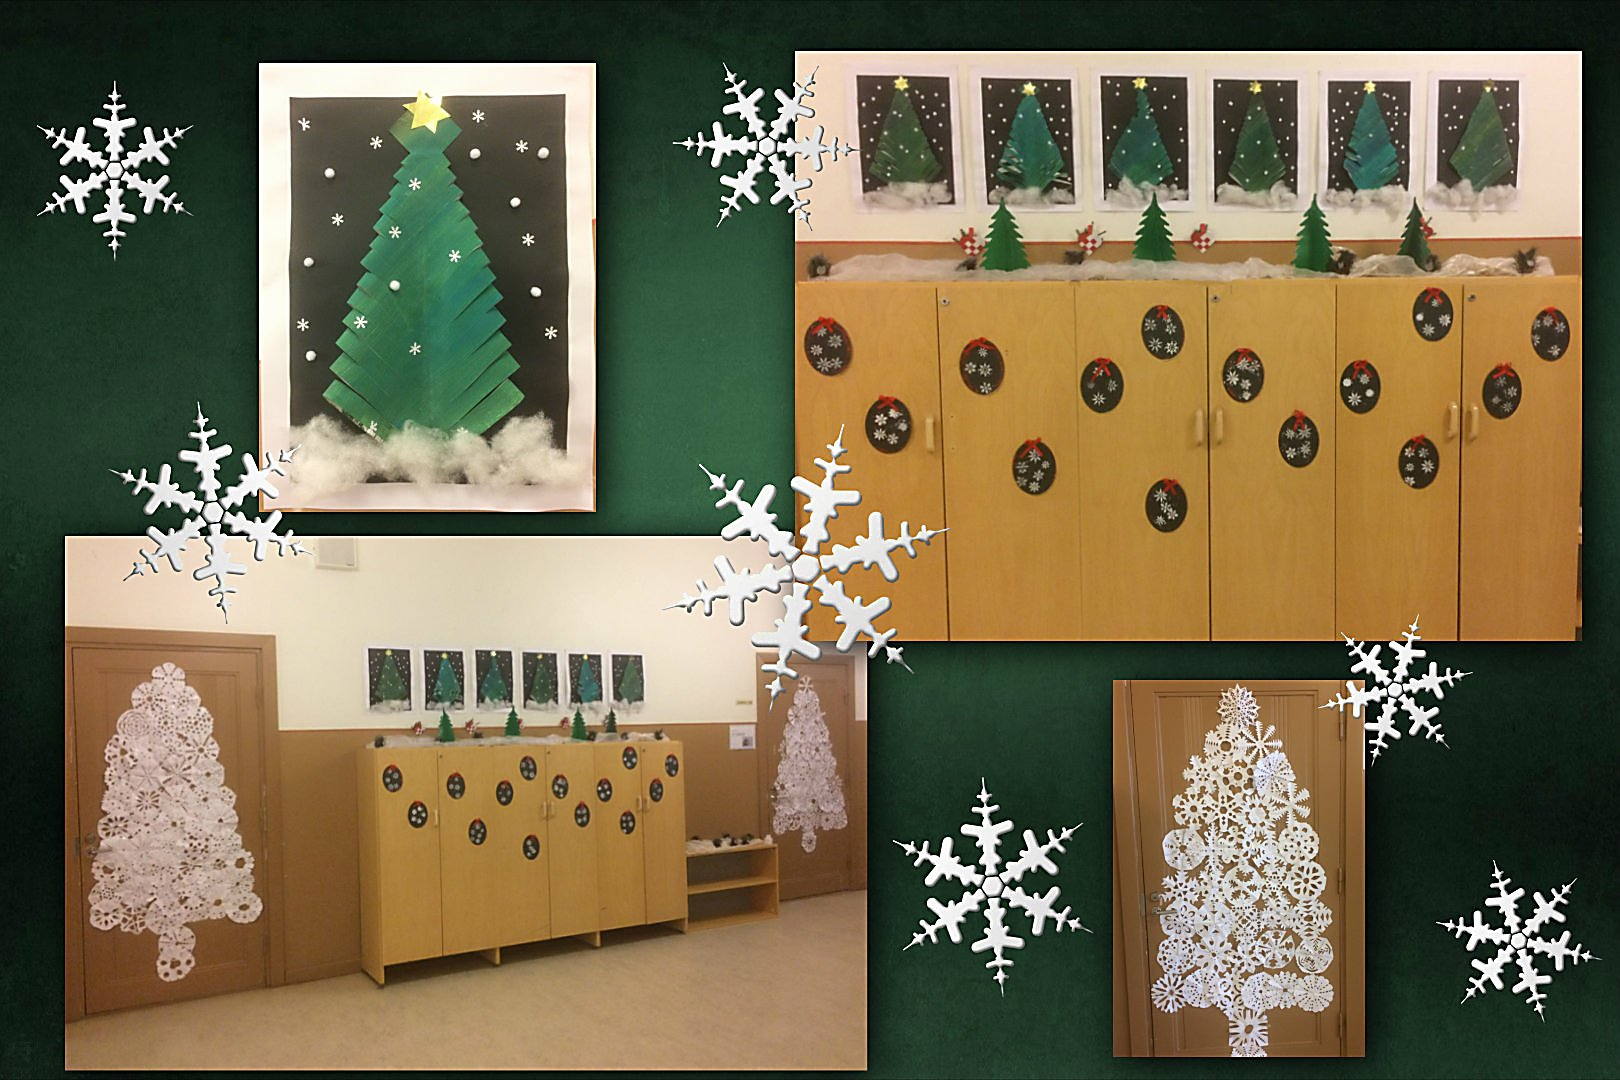 the halls at school outside the english classes are all decked out in christmas splendour classroom doors on the second floor are covered with lacy